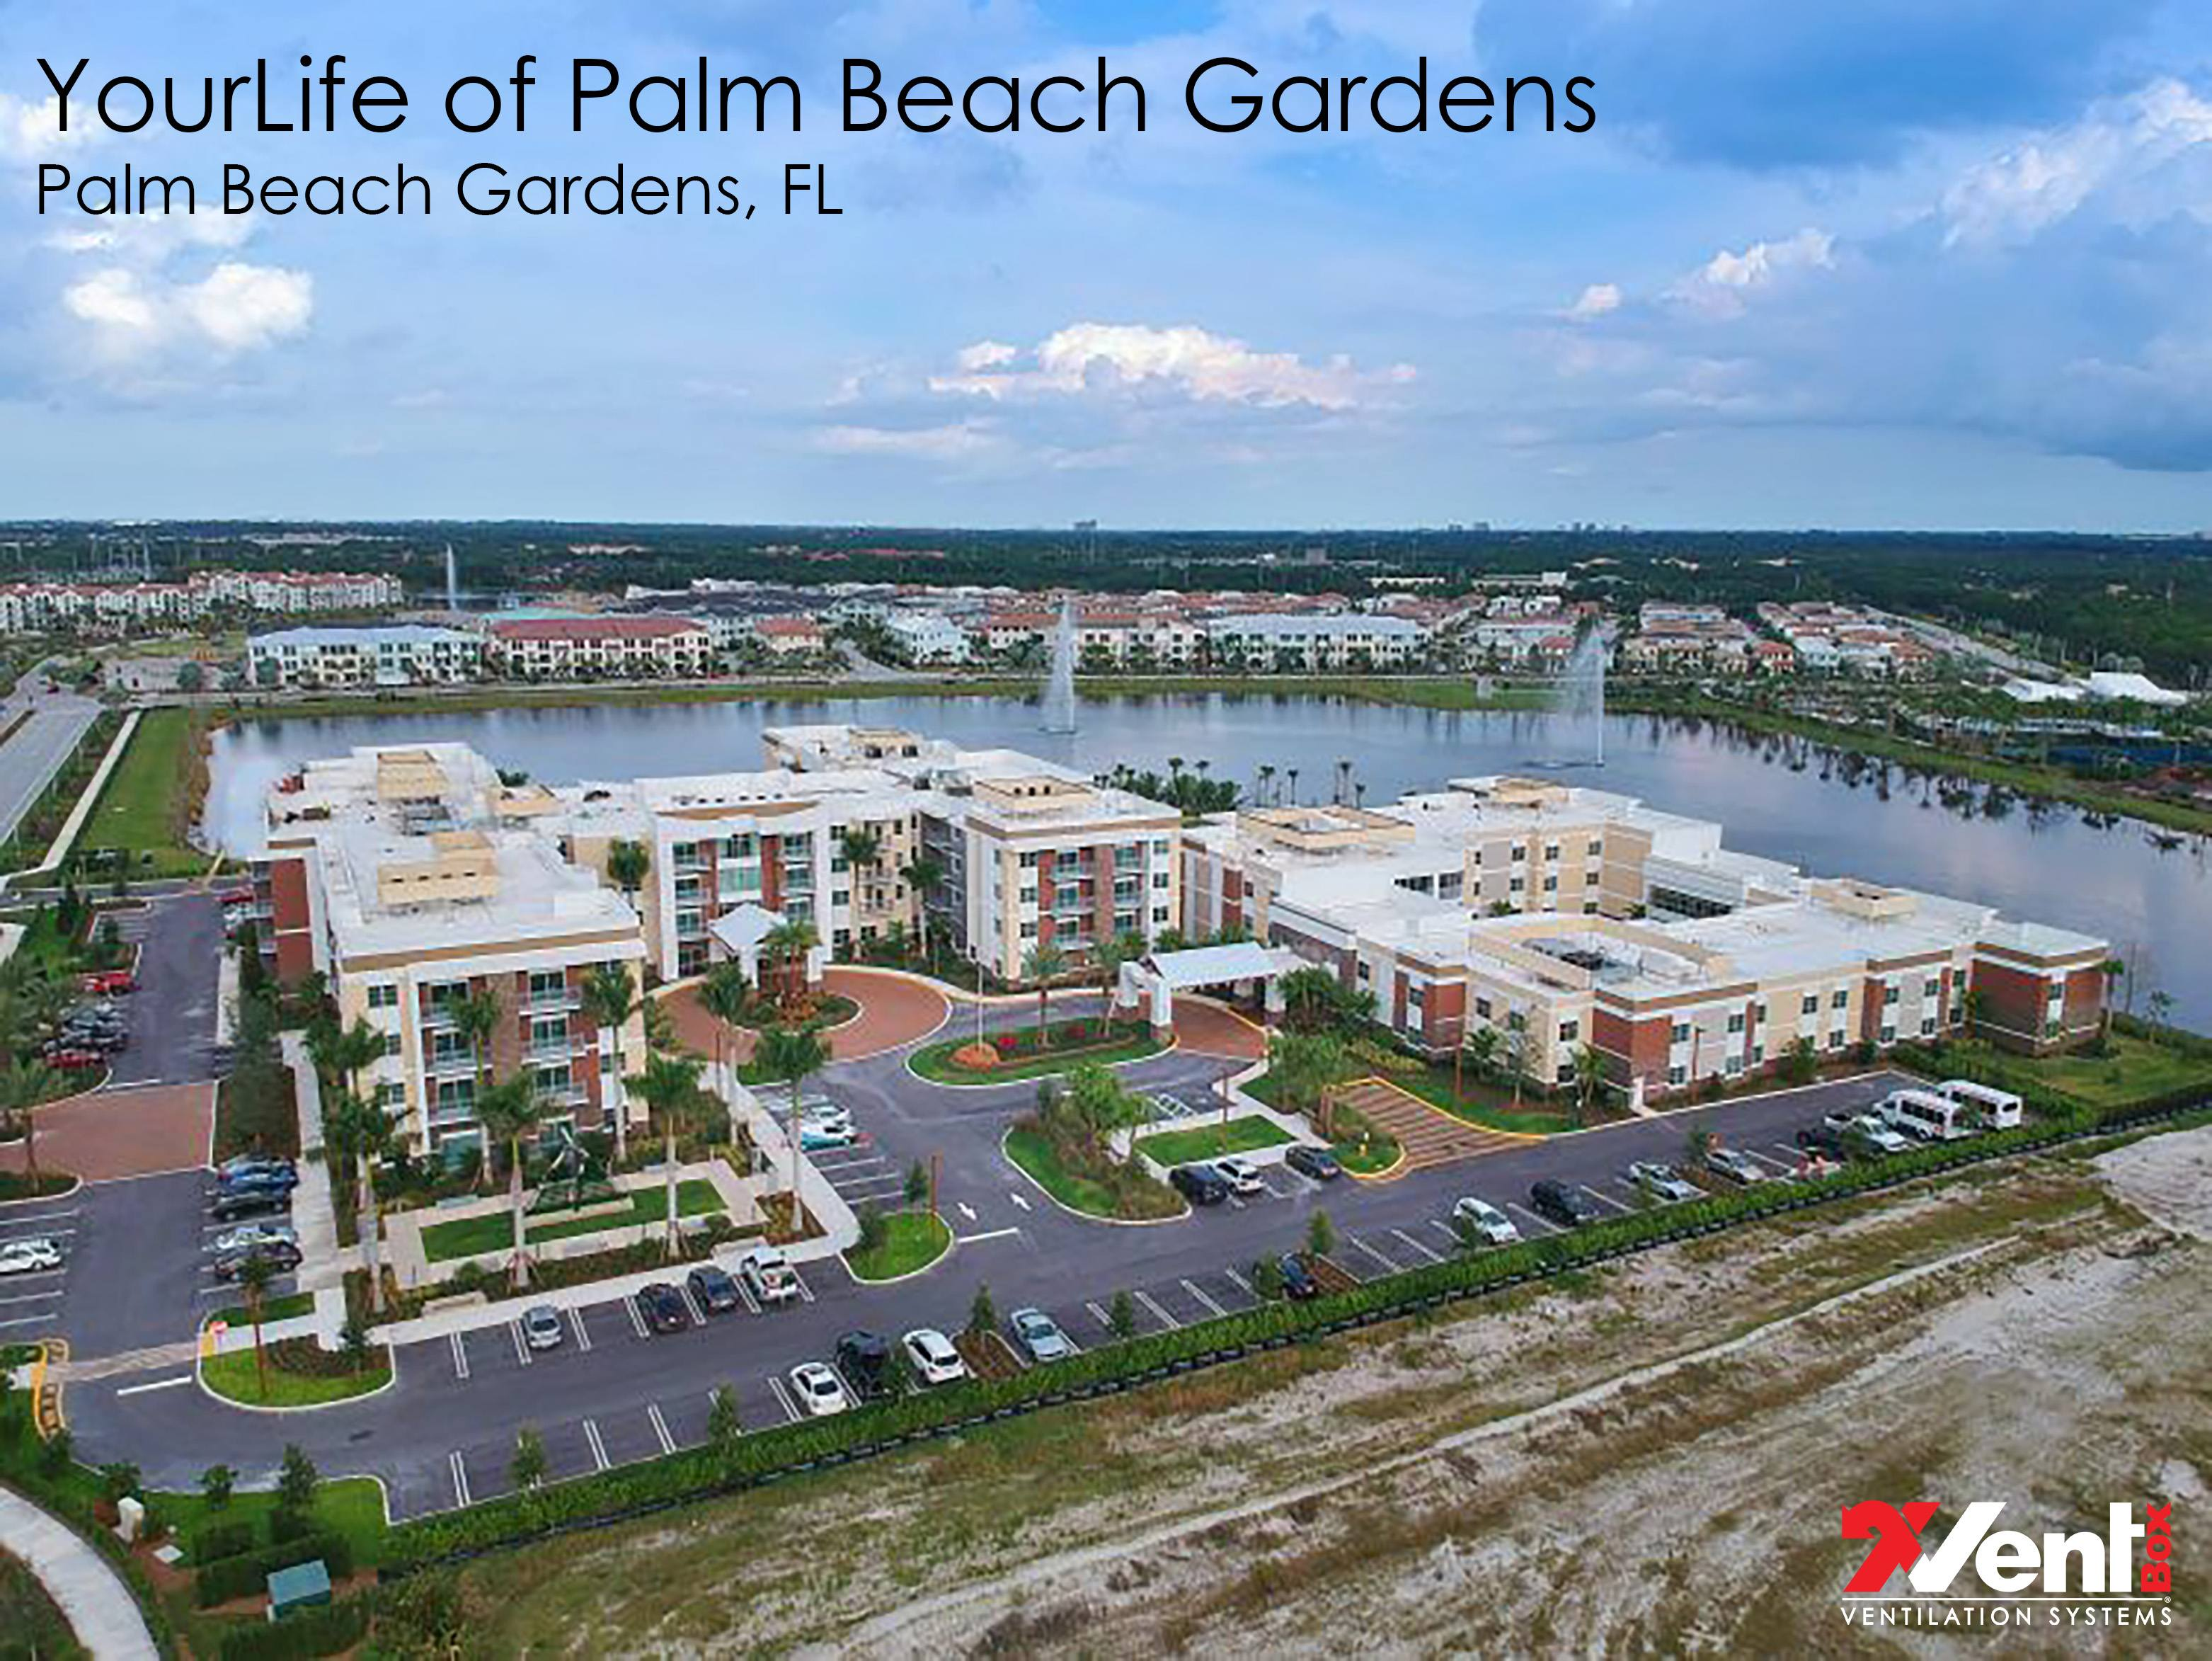 YourLife of Palm Beach Gardens